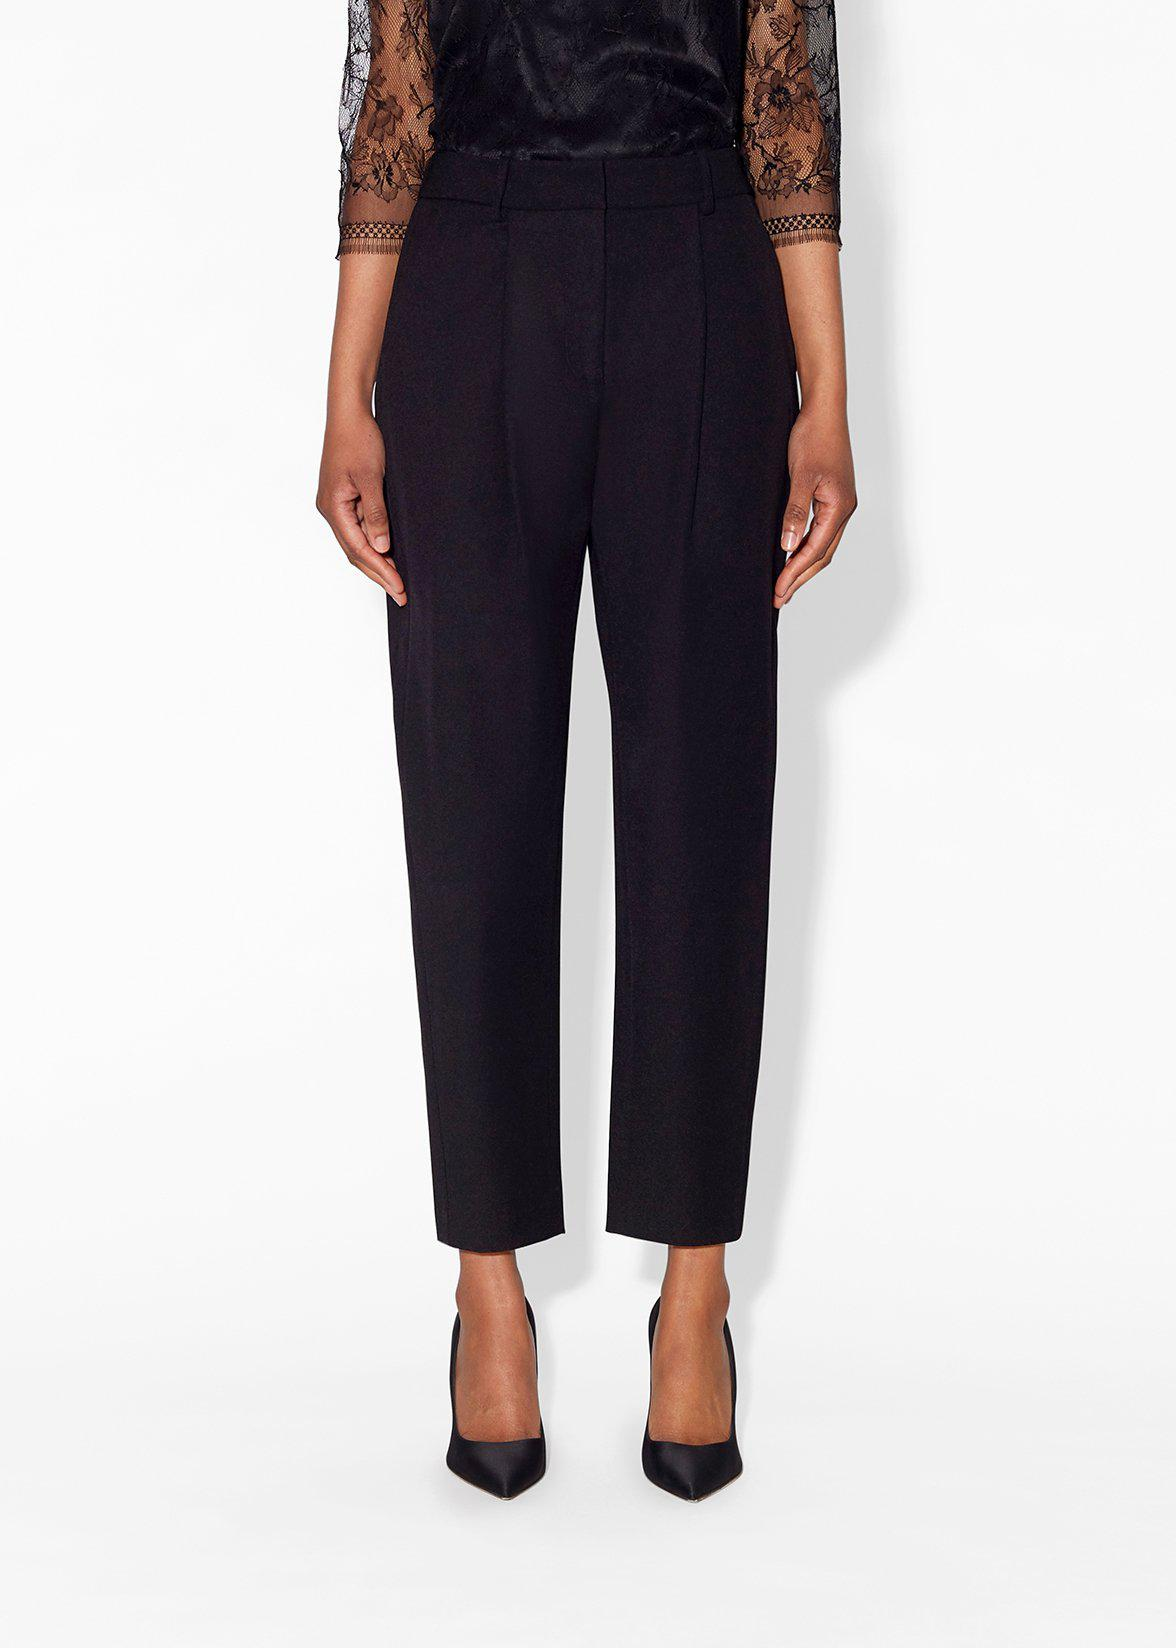 TAPERED PANT IN SUPER FINE WOOL 2